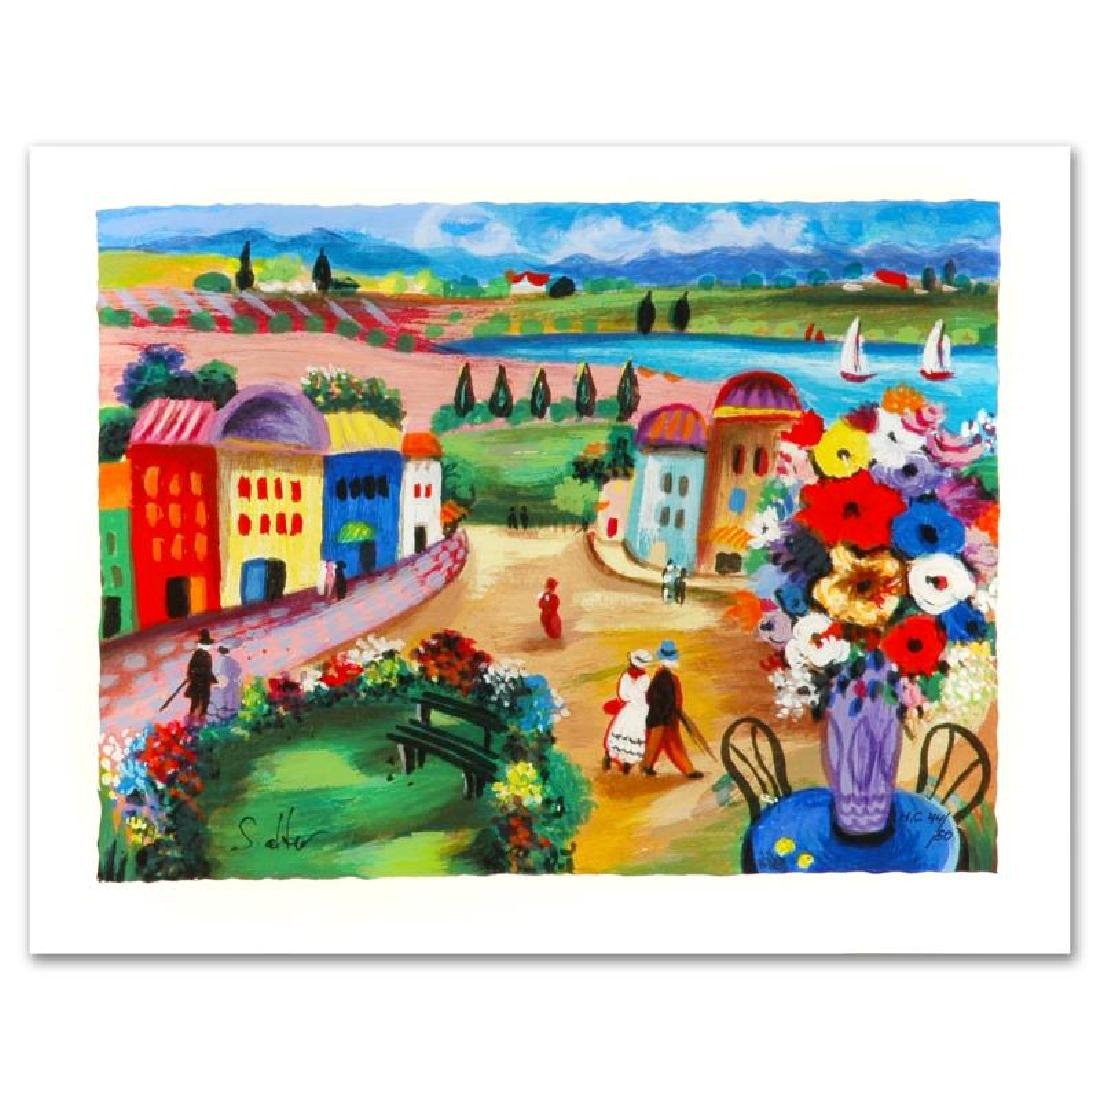 """Spring Day"" Limited Edition Serigraph by Shlomo Alter"